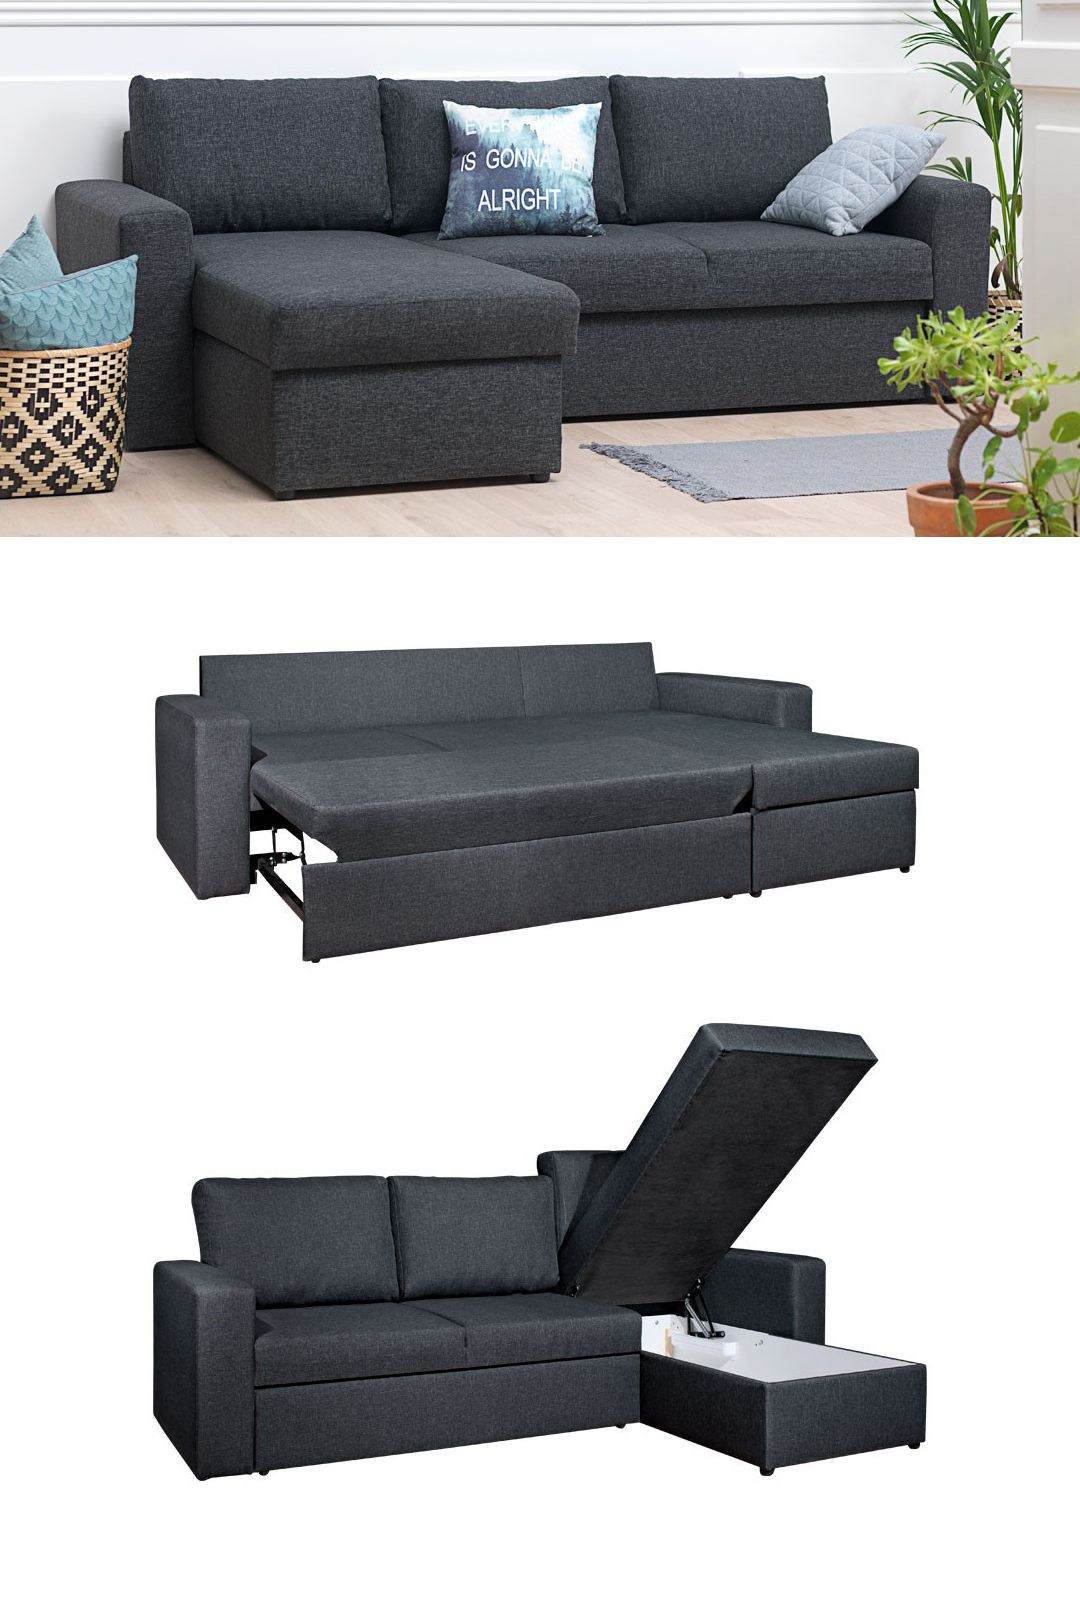 Mariager Reversible Sofa Bed Offers